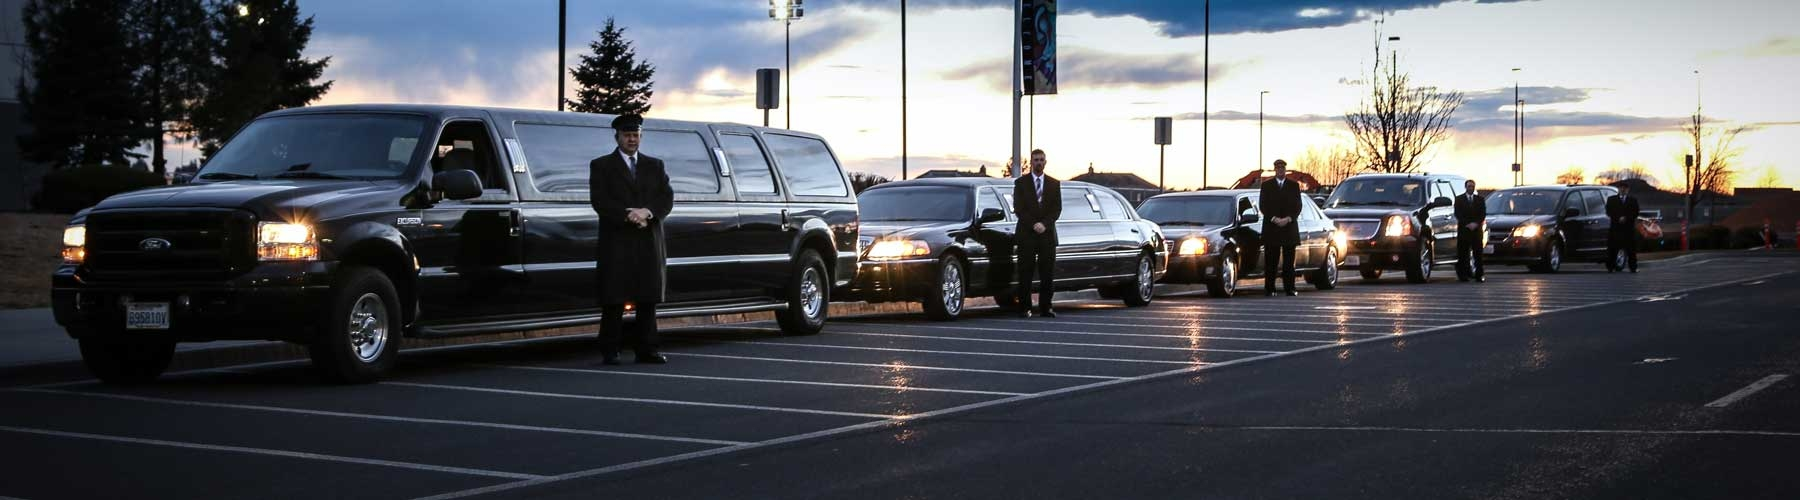 Up Country Limousine Service & Wine Tours - Valley Springs, CA 95252 - (209)772-2107 | ShowMeLocal.com